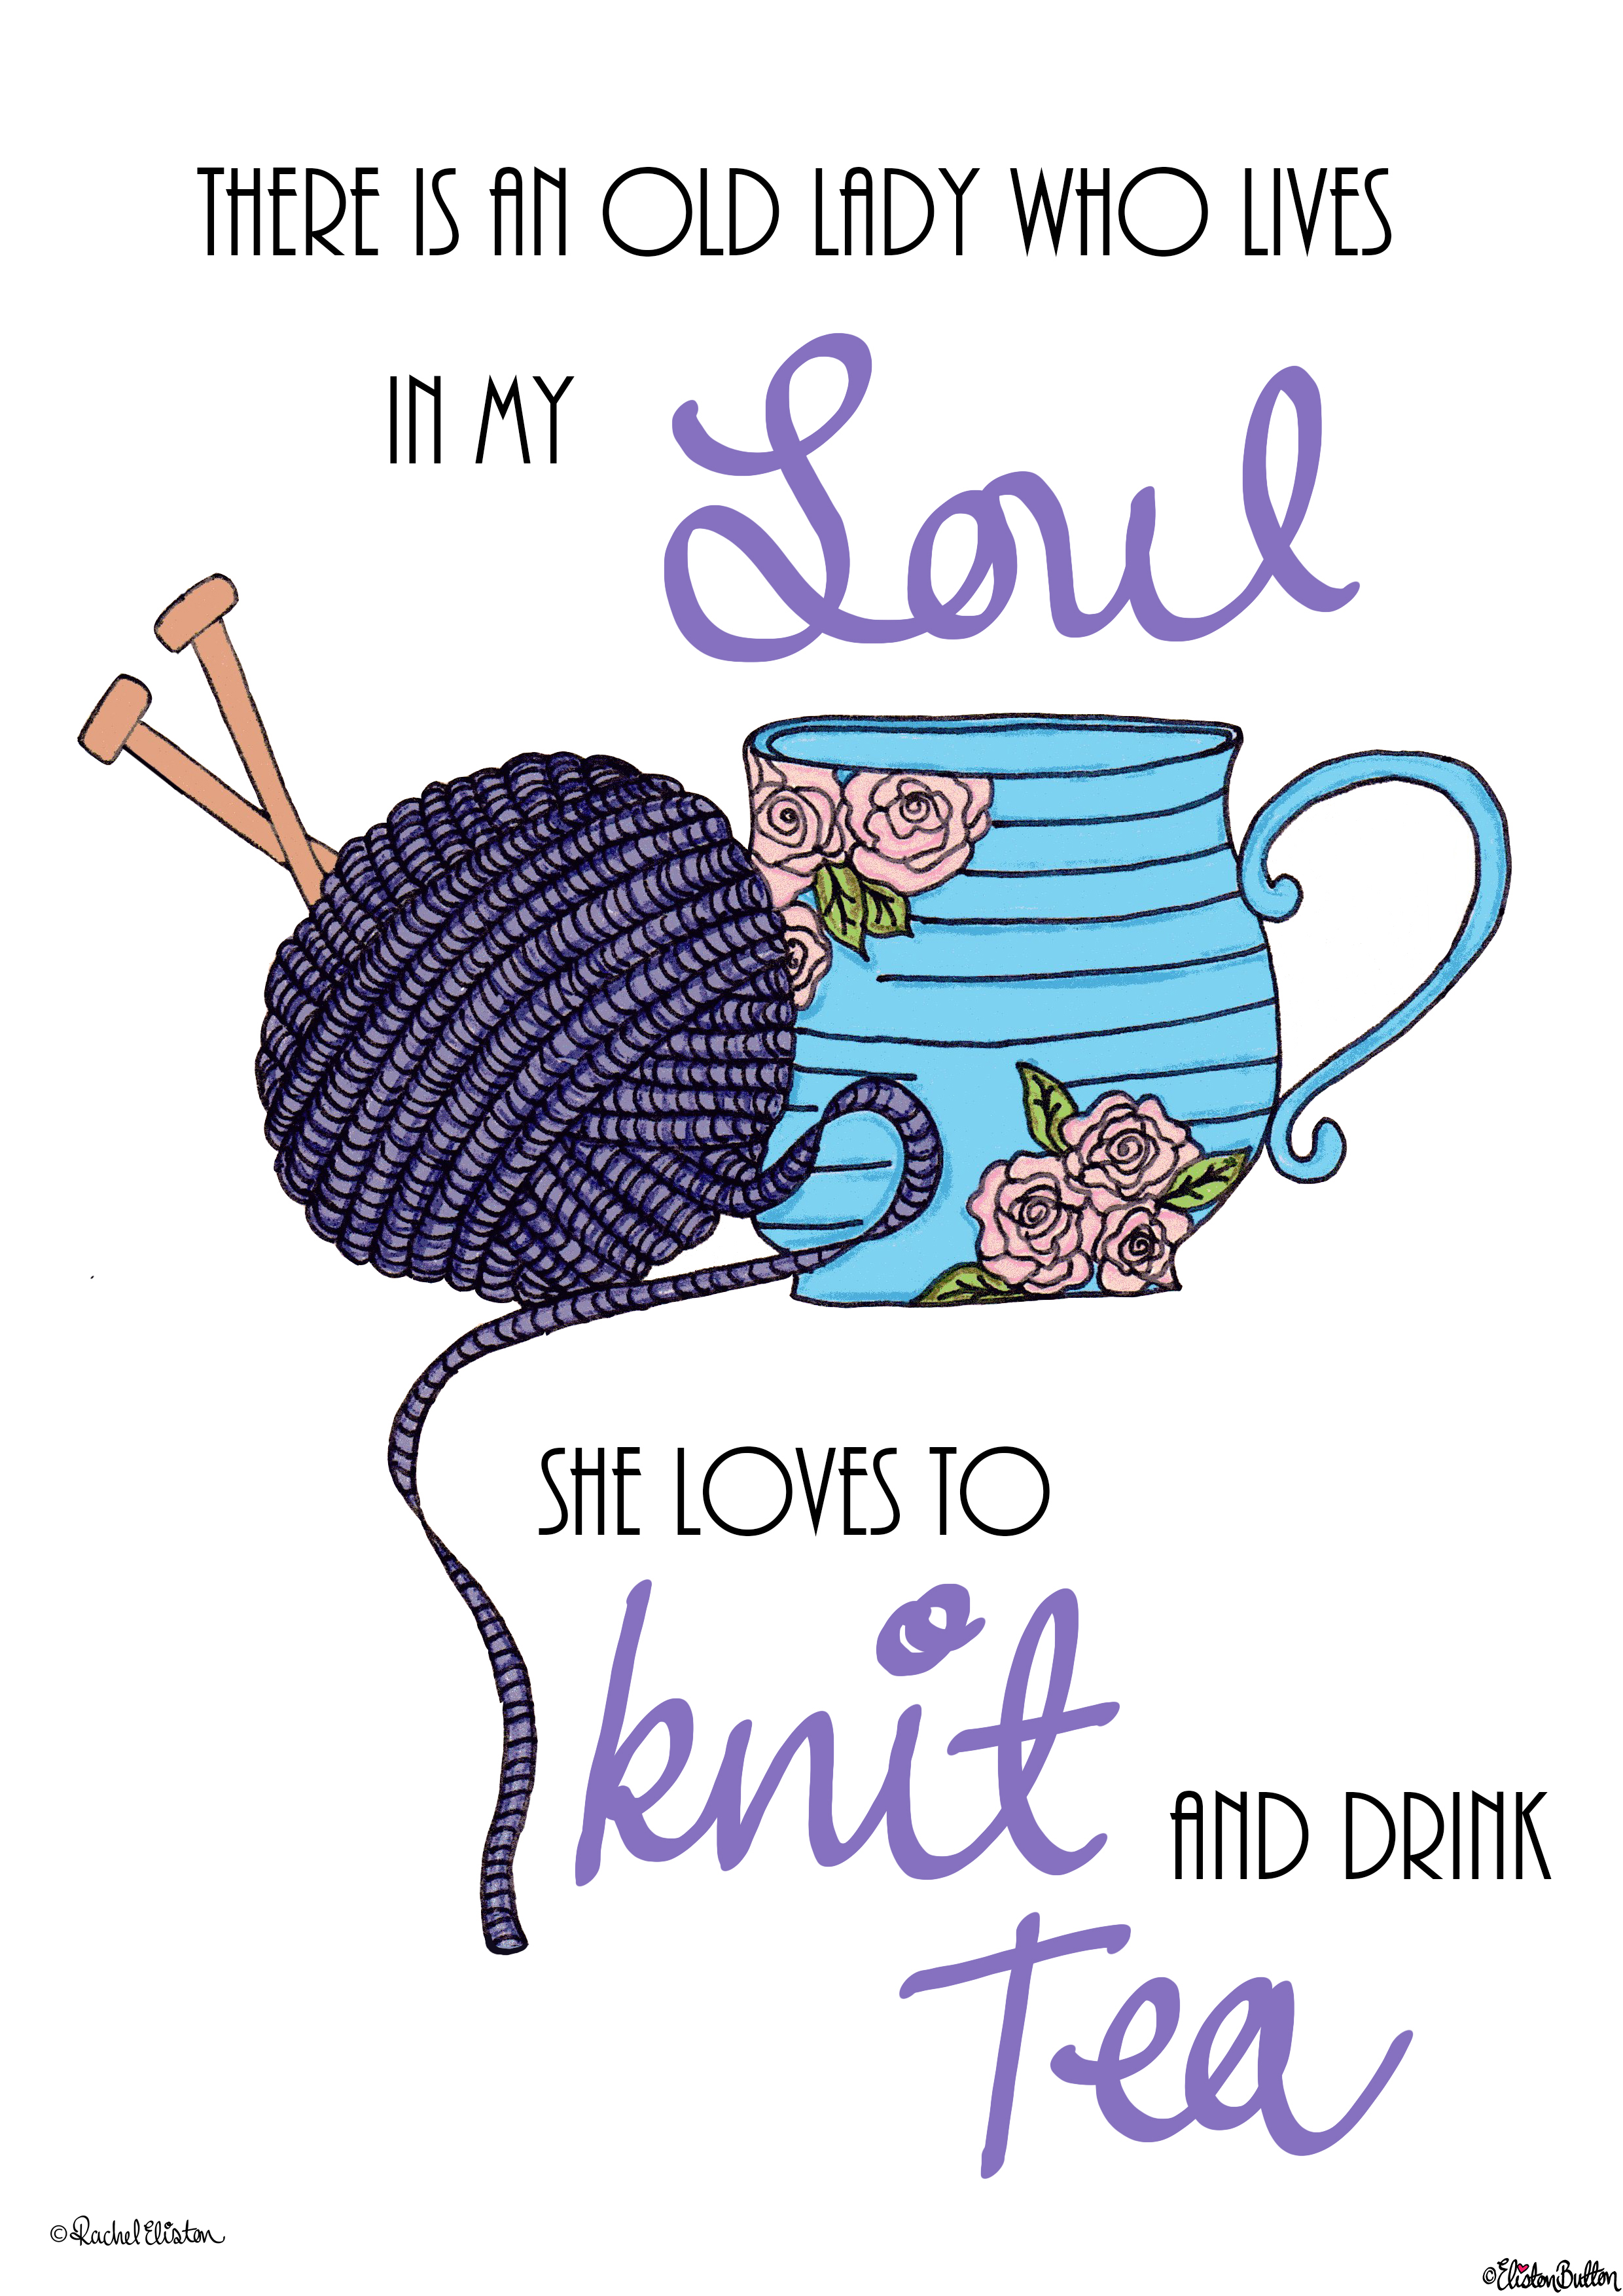 Knit and Drink Tea Typographic Quote Illustration Wall Art Print  with Written Copyright - Create 28 - No. 22 & 23 - Typographic Quote Illustrations at www.elistonbutton.com - Eliston Button - That Crafty Kid – Art, Design, Craft & Adventure.